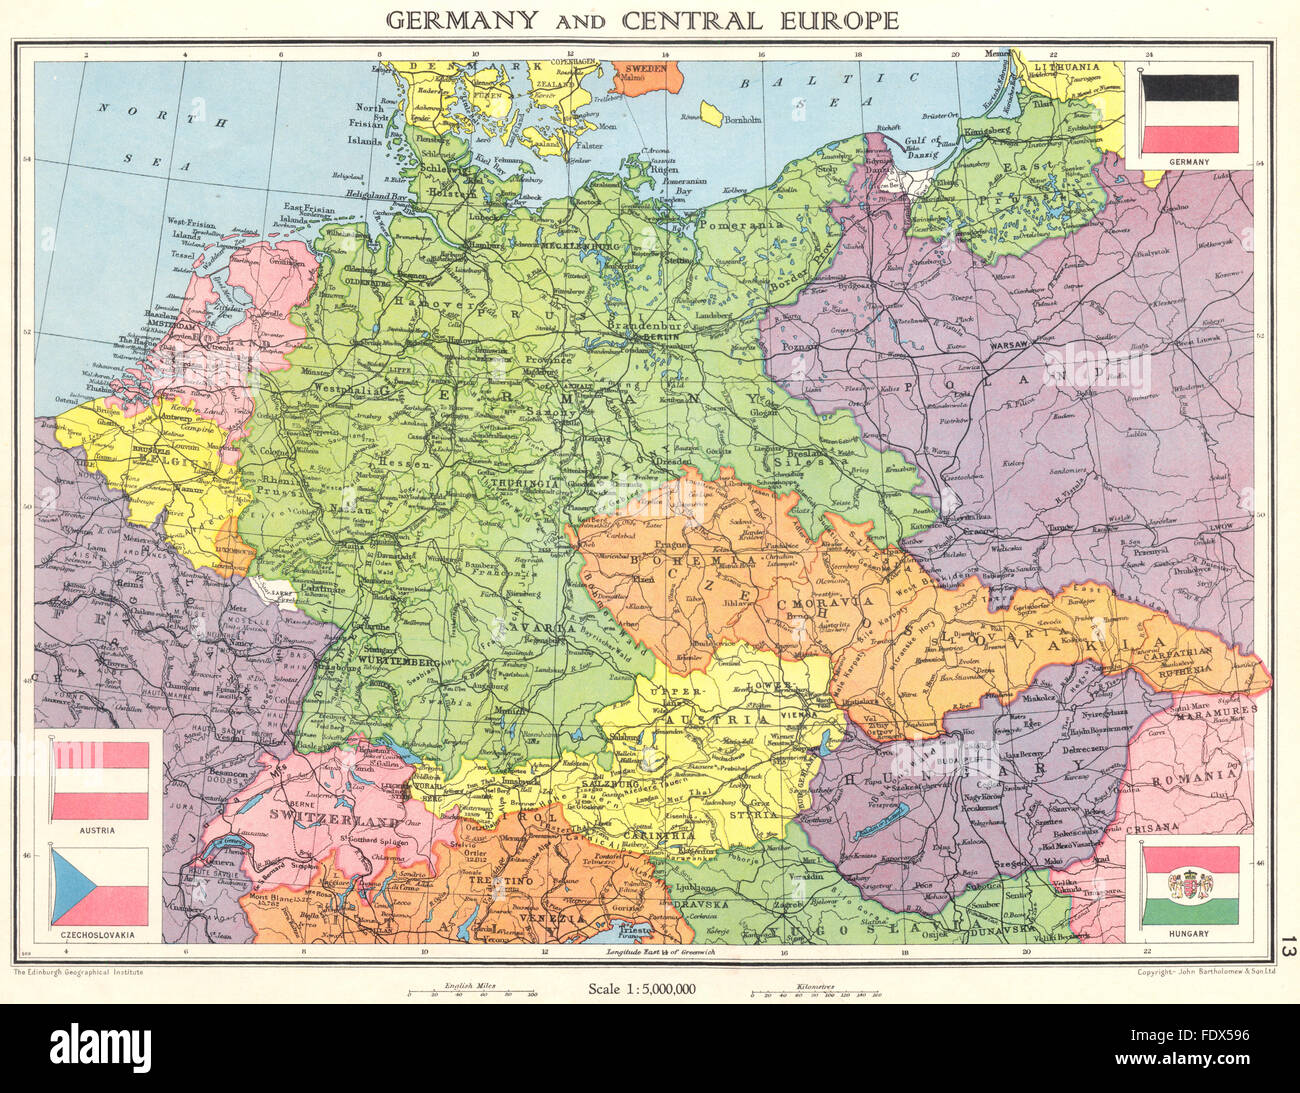 Central Germany Map.Germany Central Europe Shortly Before World War 2 Saarland 1938